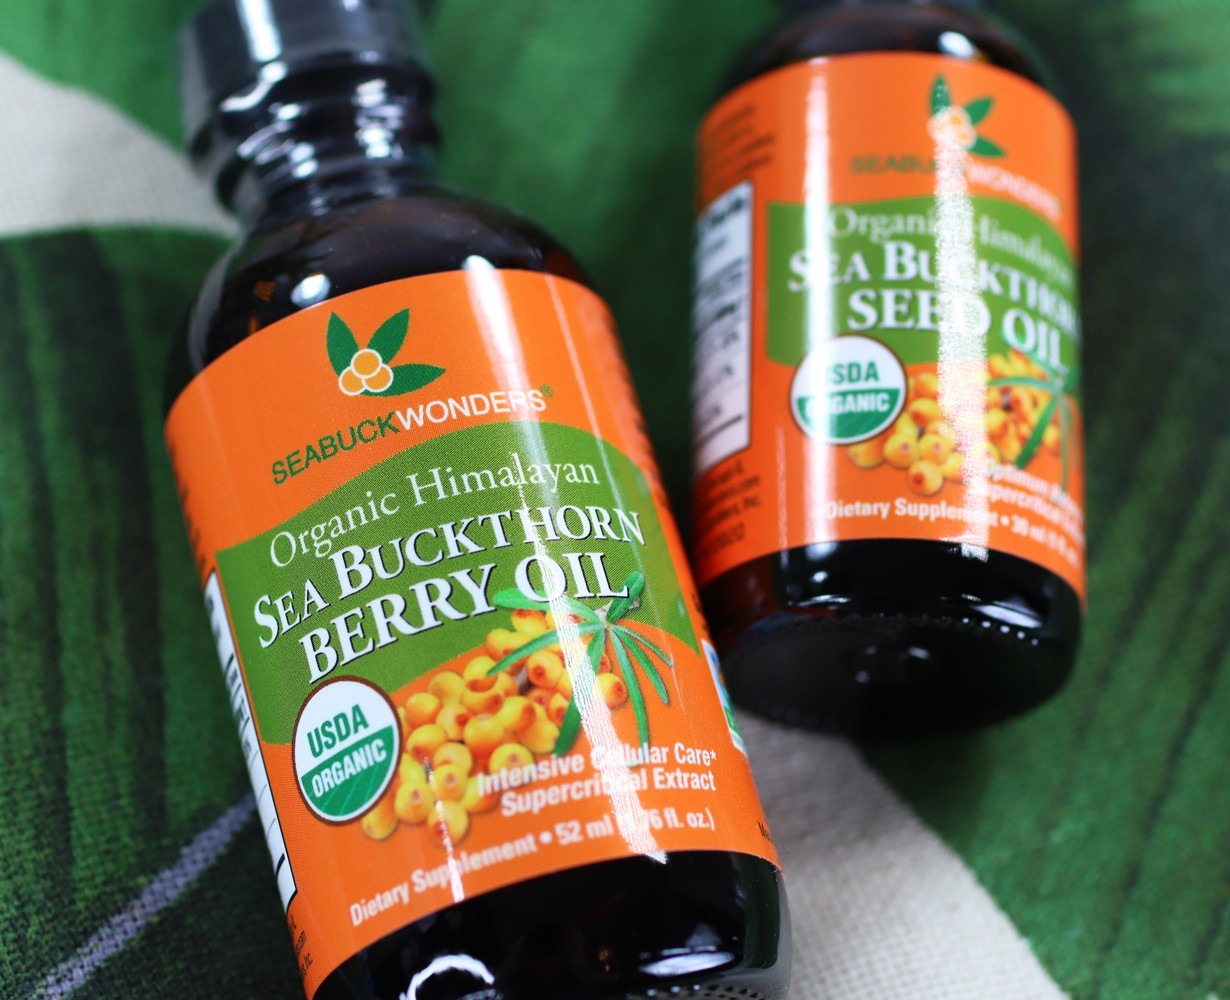 Sea buckthorn oil for hair and nail growth - I Found Supplements for Hair Growth That Really Work featured by popular Los Angeles cruelty free beauty blogger My Beauty Bunny